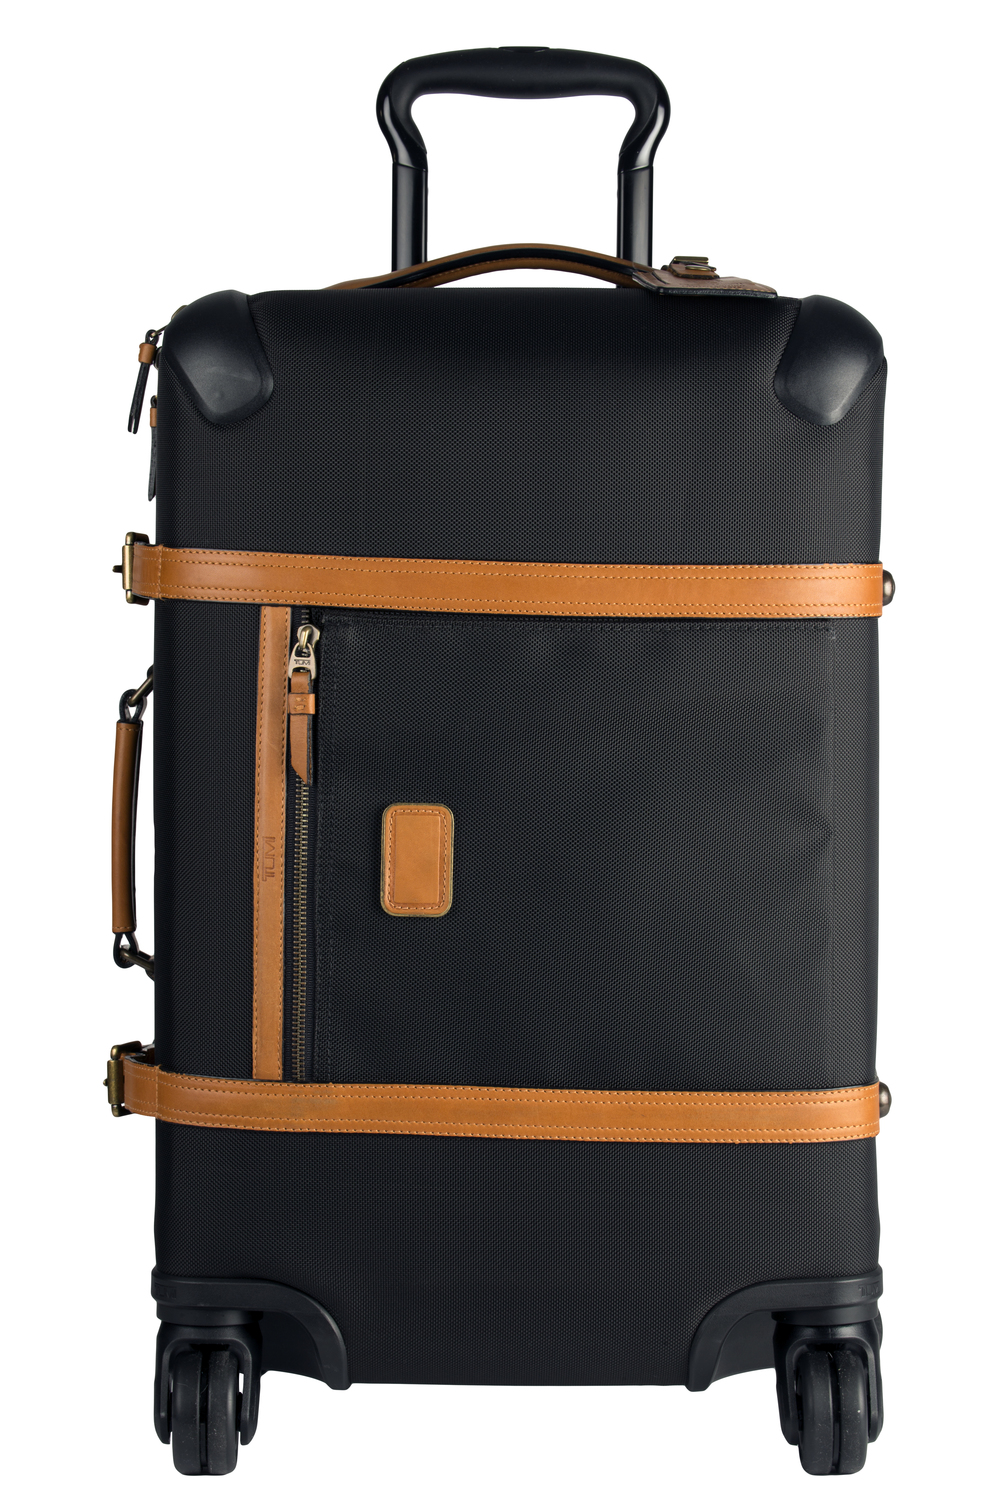 TUMI 1975 Collection International 20 inch Carry-On (55050) HK$12,390.jpg